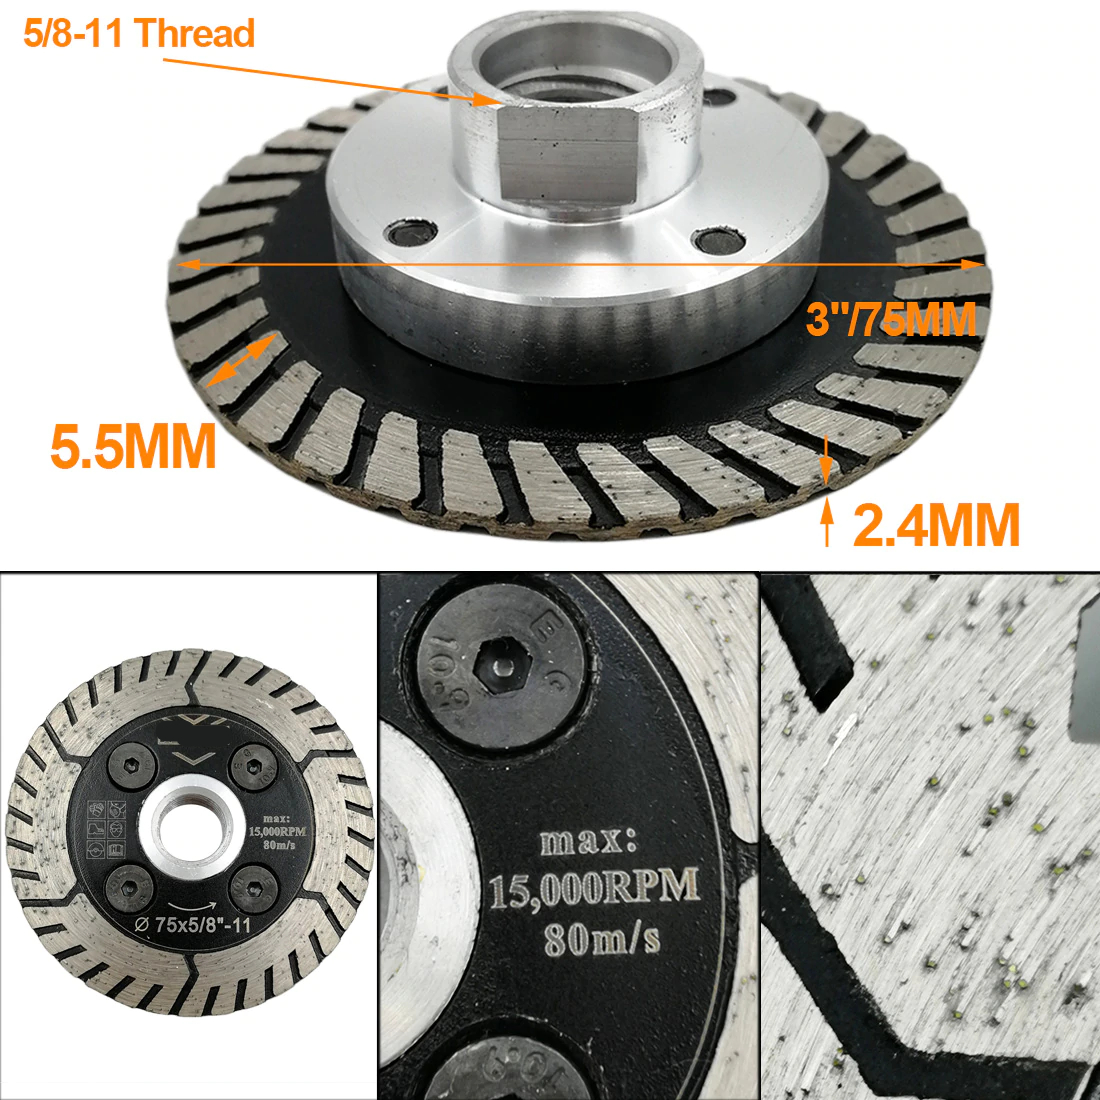 Diamond Dual Cutting Wheel Saw Blades Grinding Disc for Grind Sharpen Granite Marble Concrete M14 or 5/8-11 | 1pc | Dia 75/115/125mm